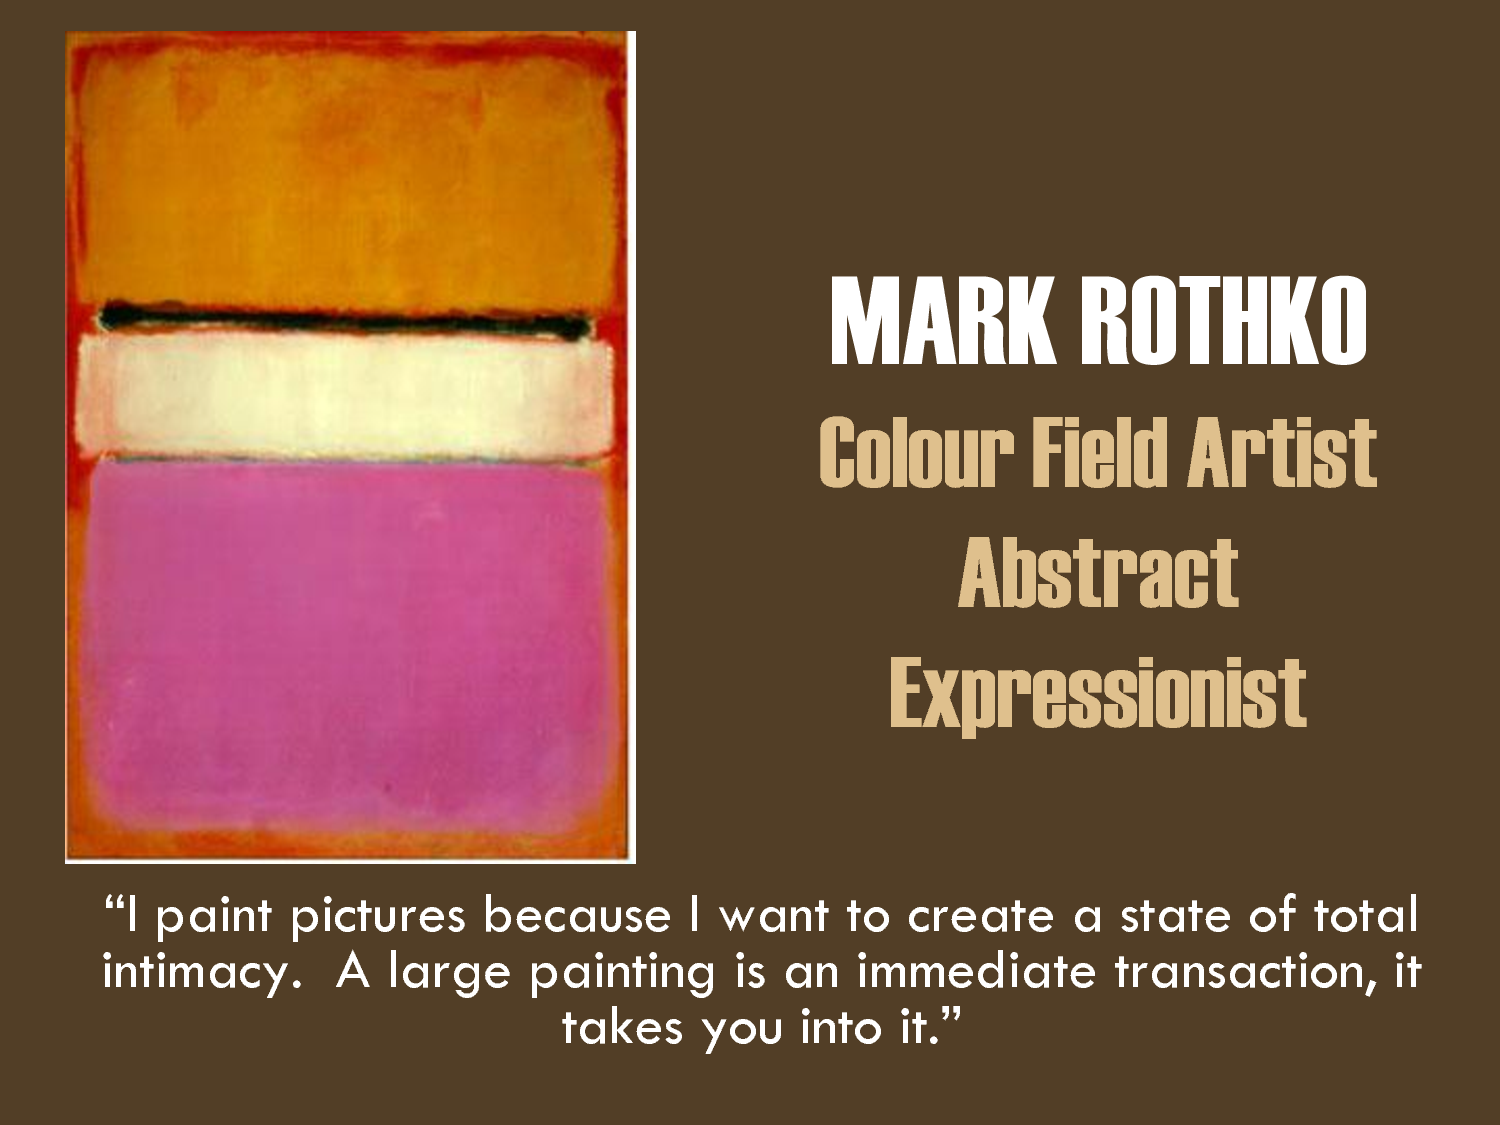 an analysis of the works of mark rothko and jackson pollock Qian, a 75-year-old chinese immigrant, made flawless copies of modern art masterpieces by jackson pollock, mark rothko, robert motherwell, and others in his workshop in interpol's works of art unit fights art crime alongside similar units devoted to drugs, human trafficking, and international fugitives.